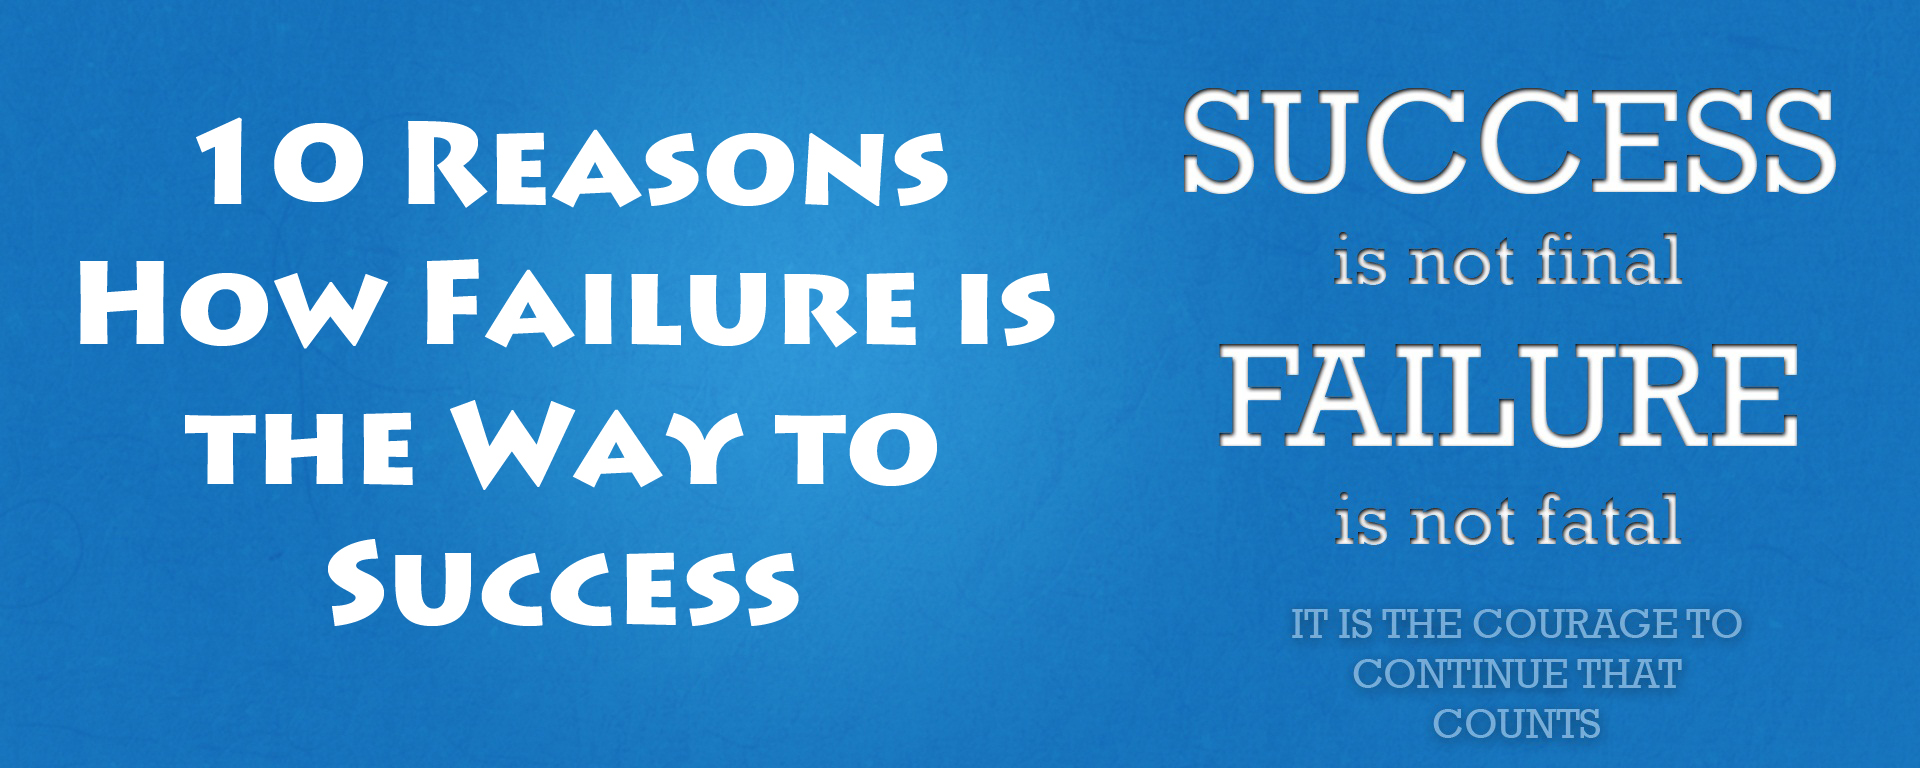 10 Reasons How Failure is the Way to Success